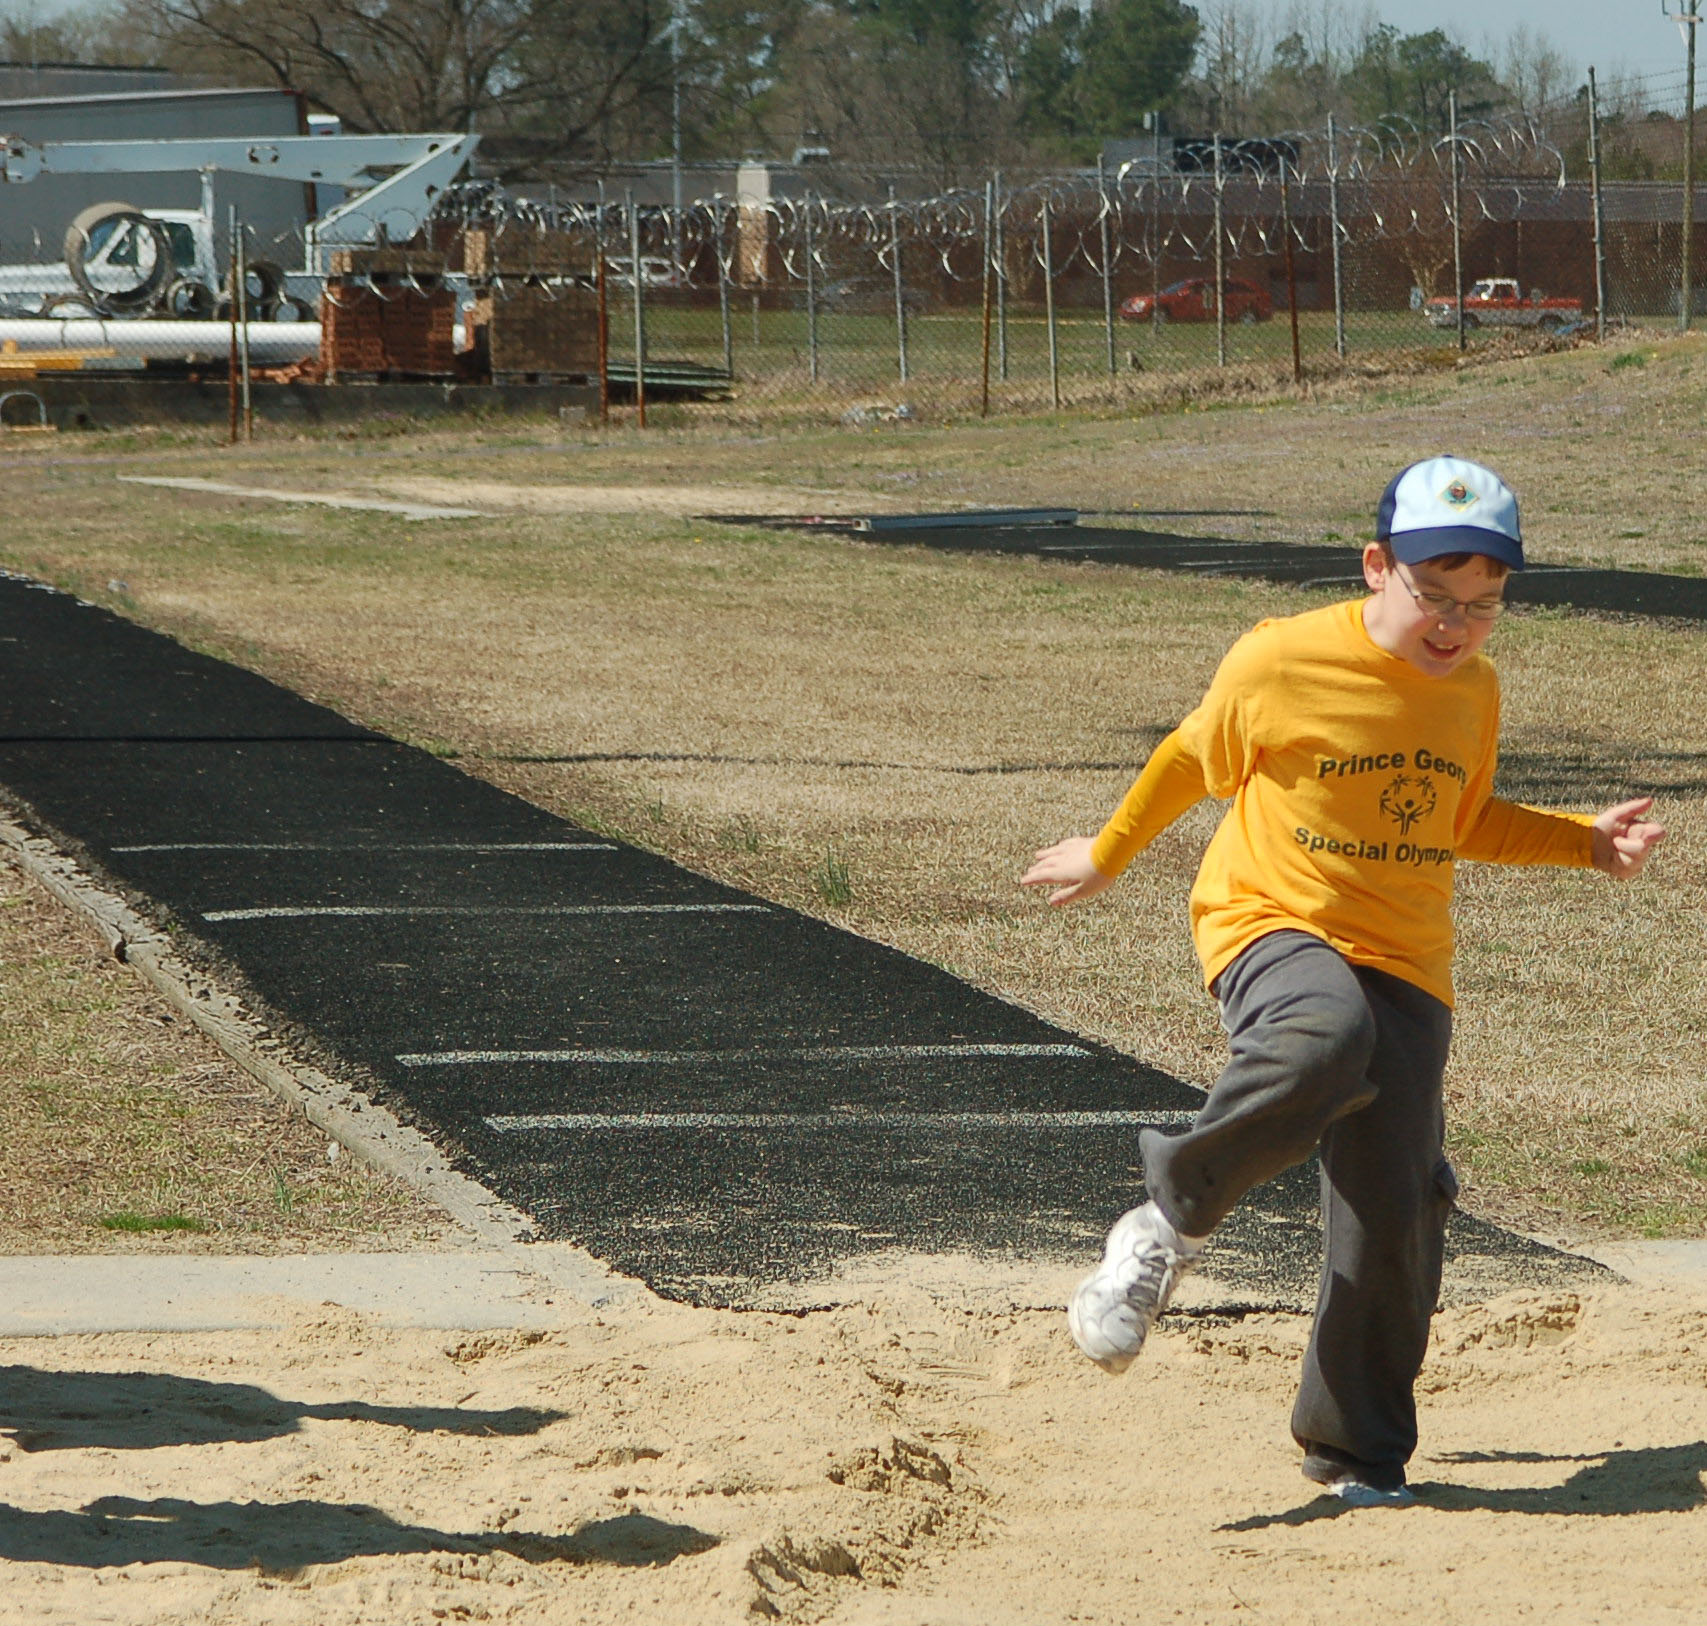 An ID student participates in the long jump. Photo by Travis Temple.